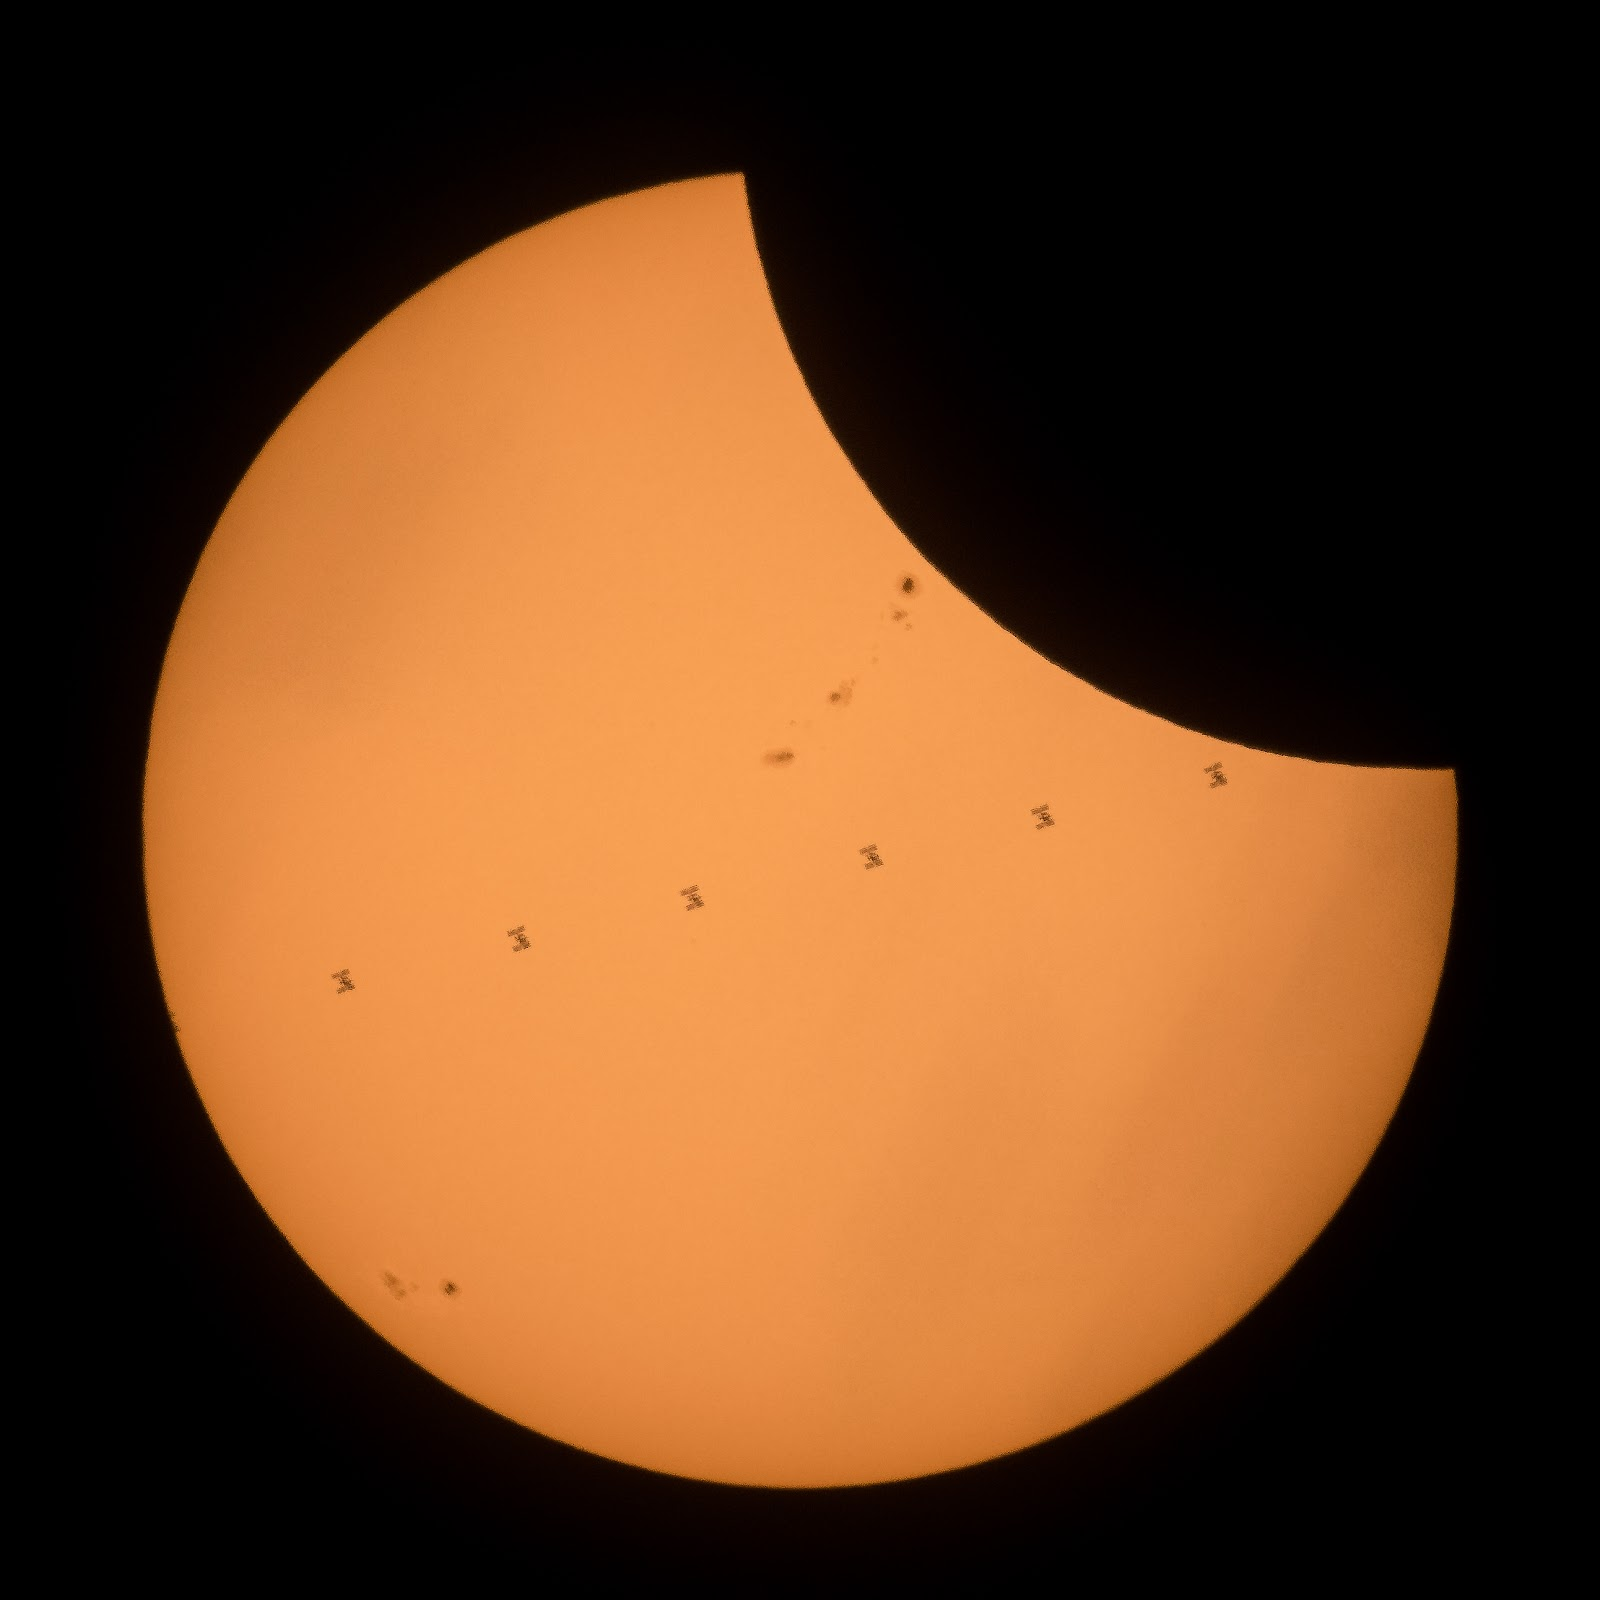 ISS transit across the sun while eclipsed by the moon